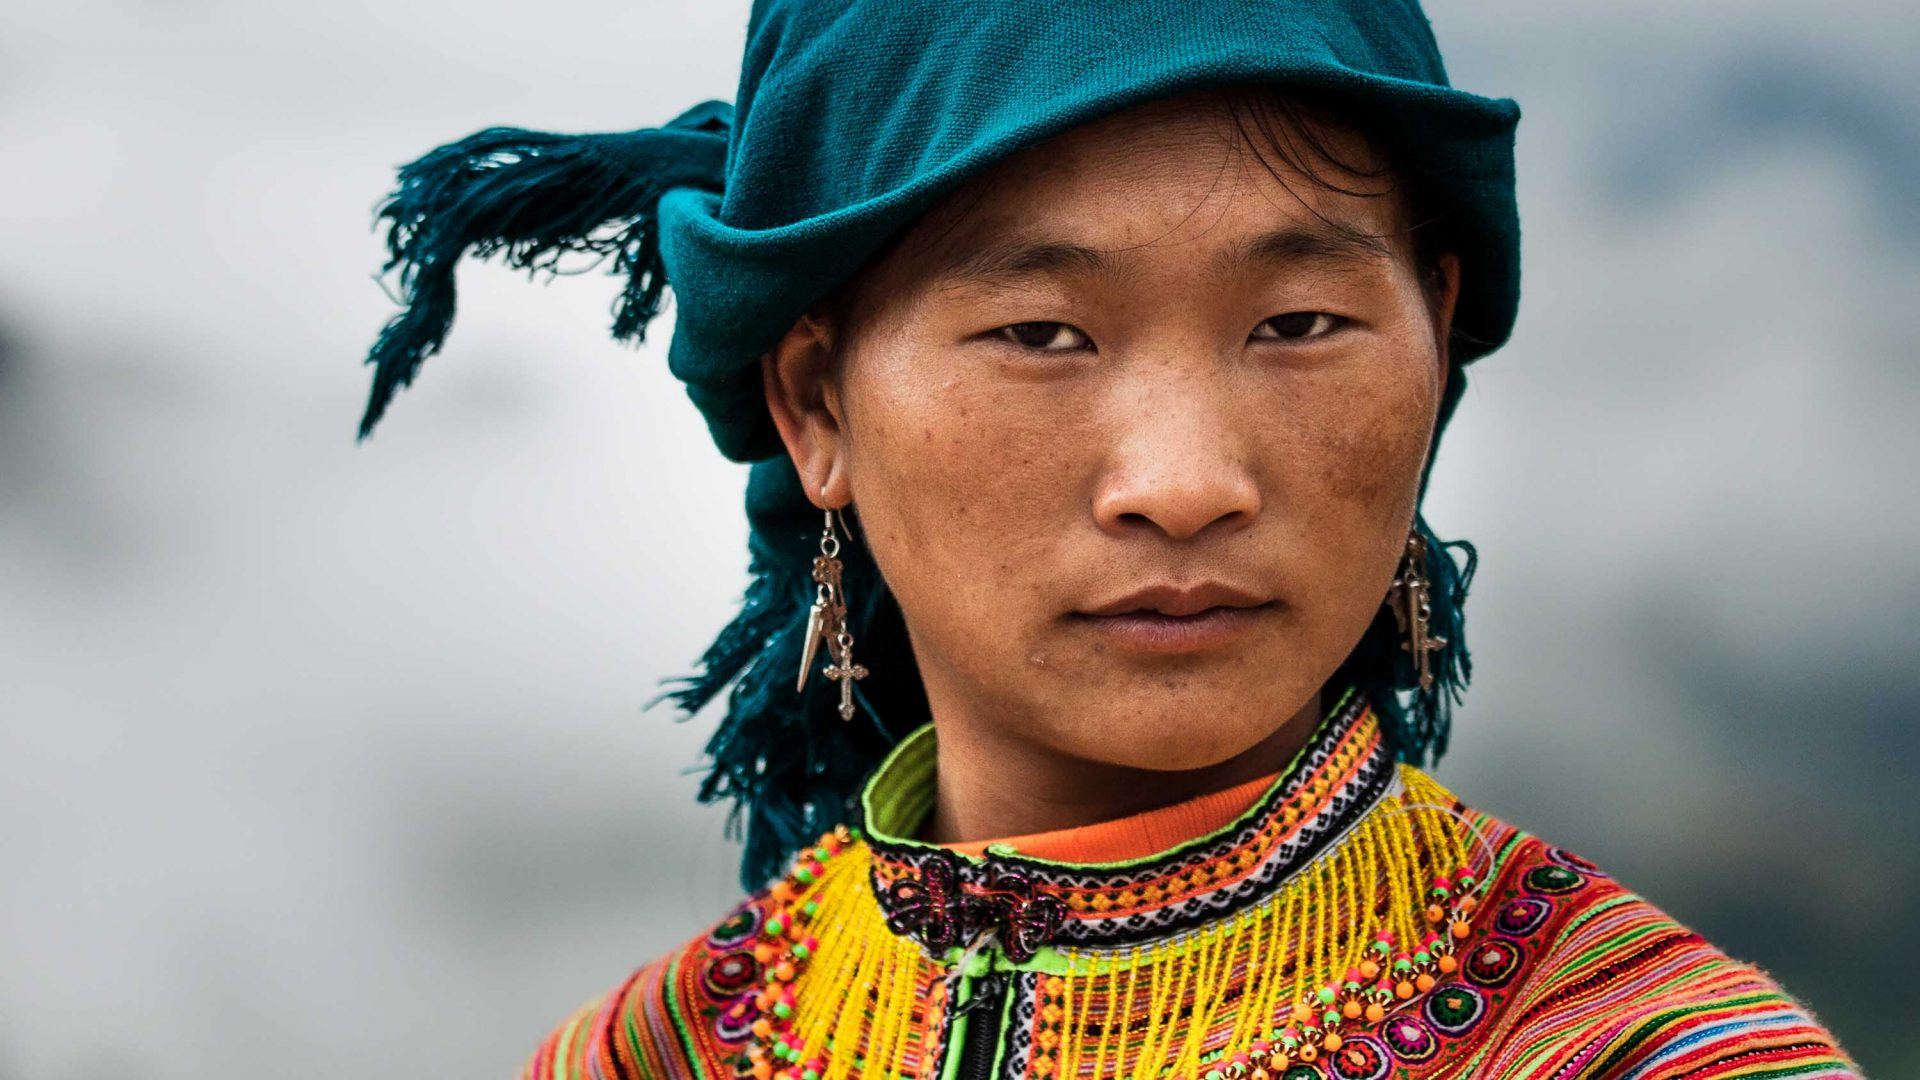 The Hmong in Bac Ha people in Vietnam.